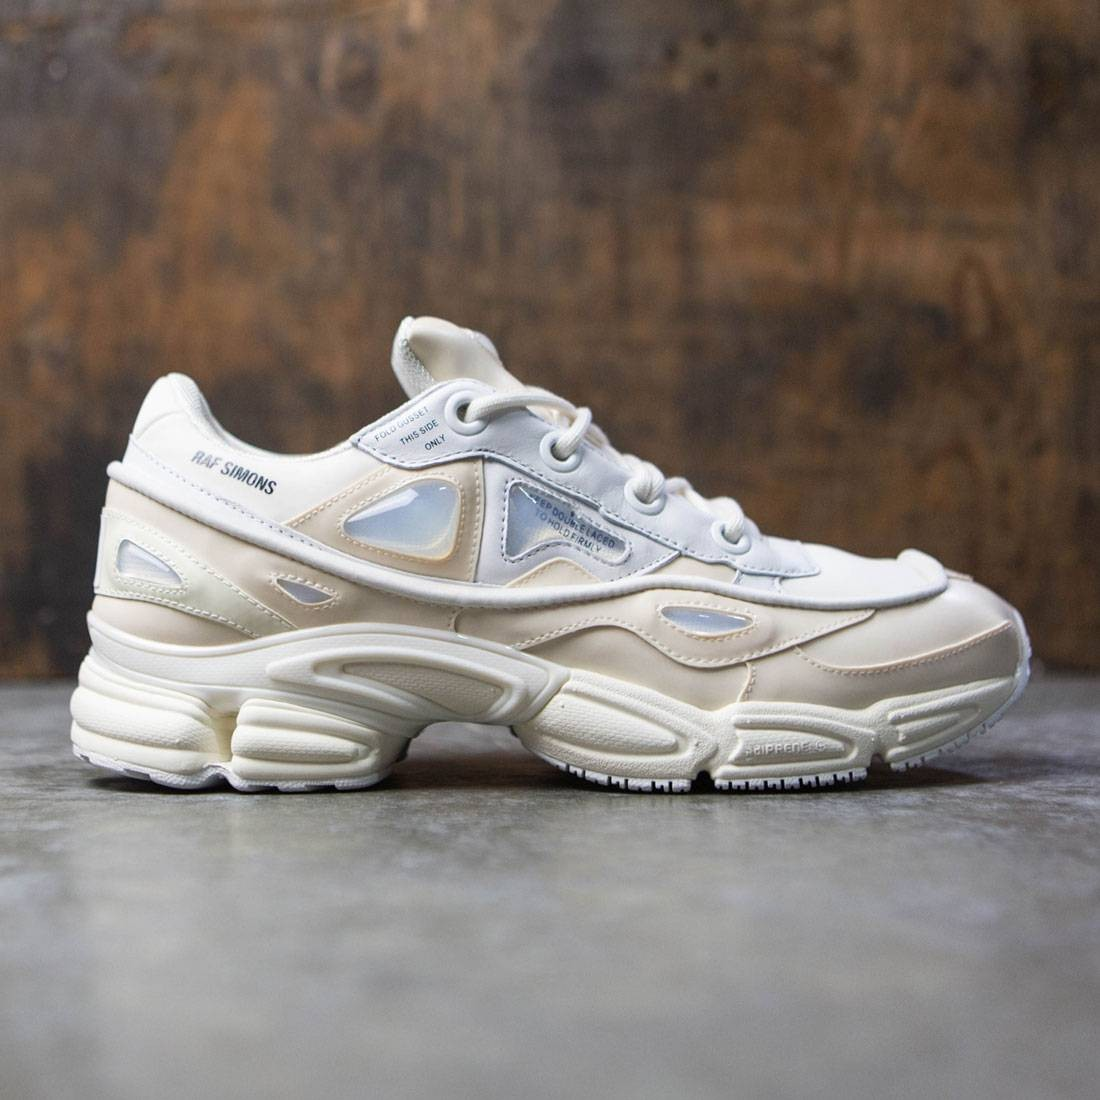 huge selection of aad4d ec62b Adidas x Raf Simons Men Ozweego Bunny white cream white crystal white core  black